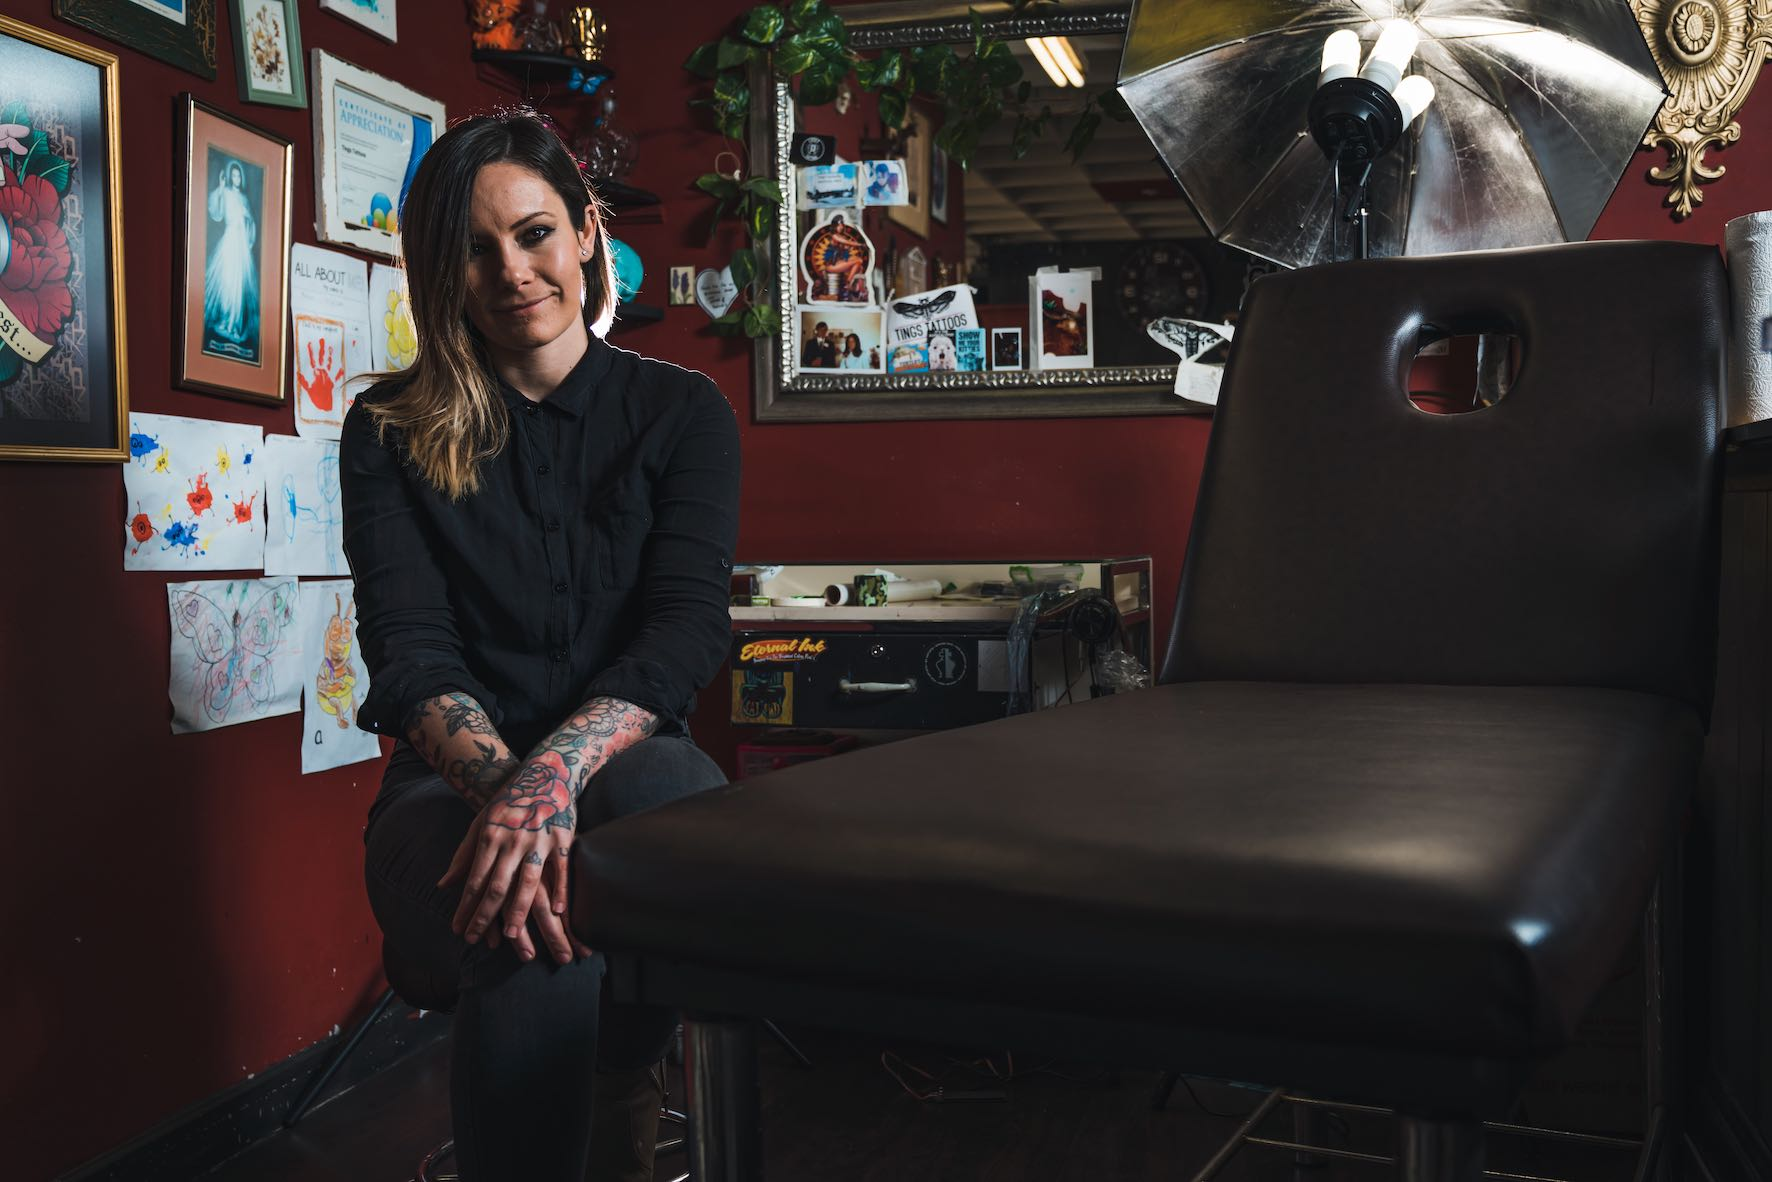 Meet Ting Thorne as our featured Tattoo Artist